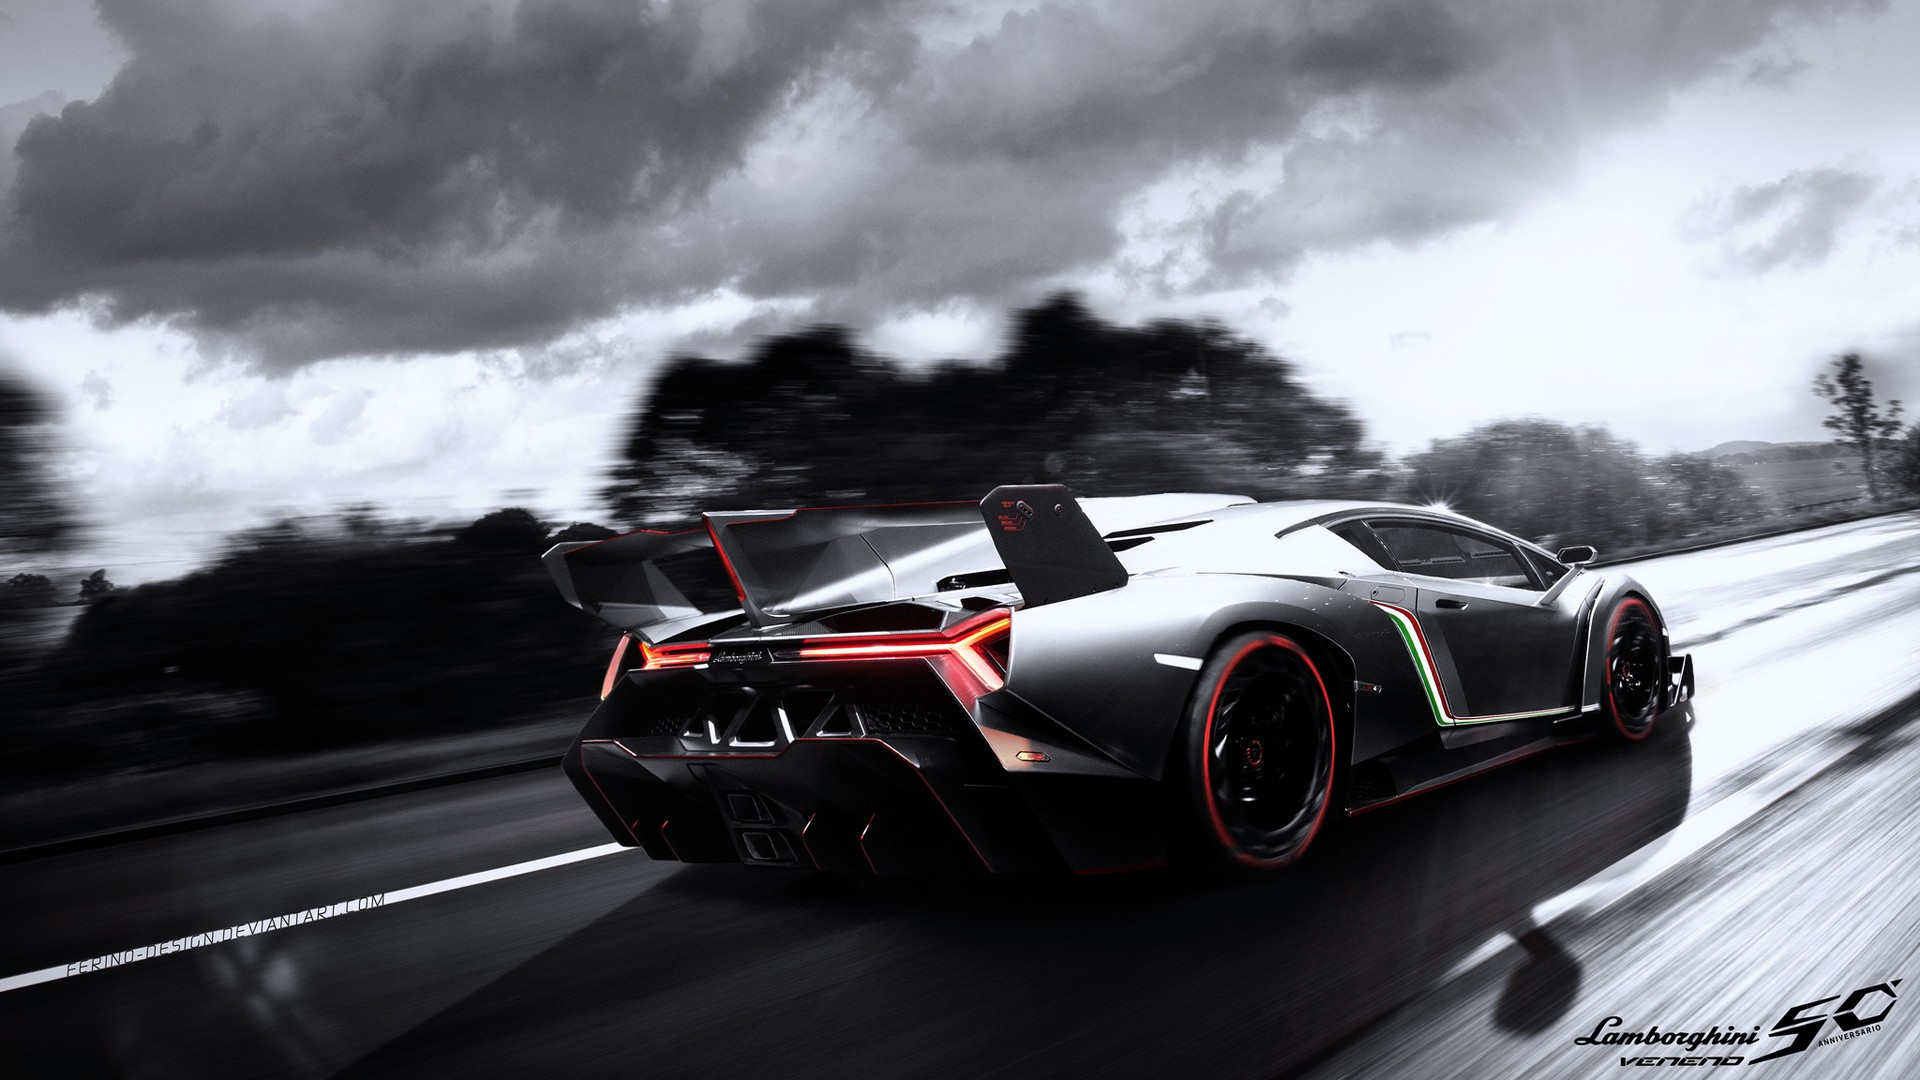 Download Lamborghini Wallpapers In HD For Desktop And 1920x1080